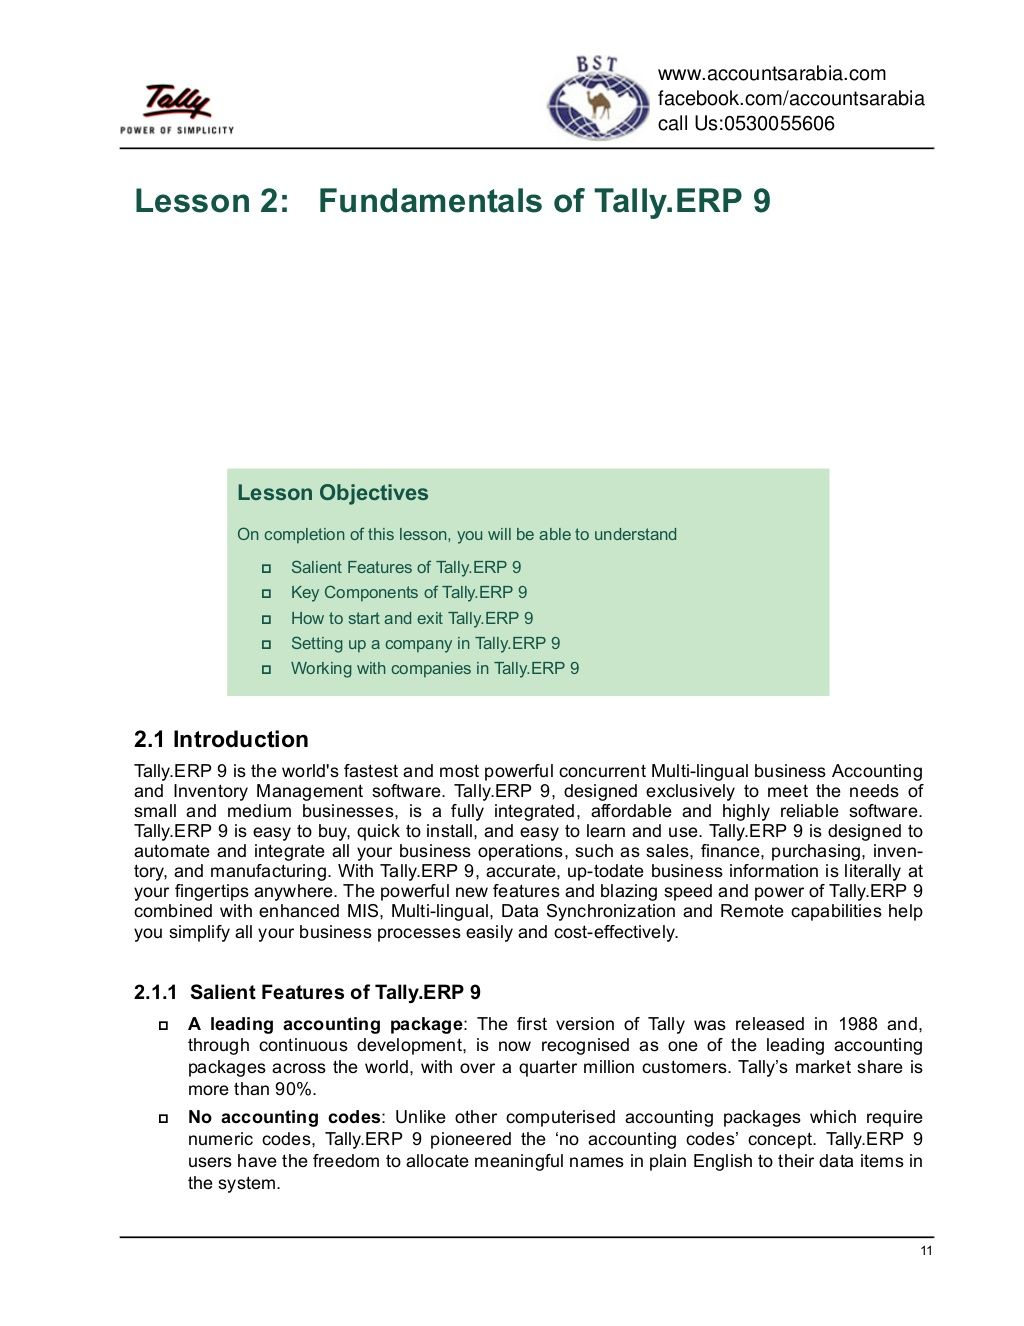 Fundamentals Of Tally Erp 9 By Accounts Arabia Via Slideshare Fundamental Understanding Lesson